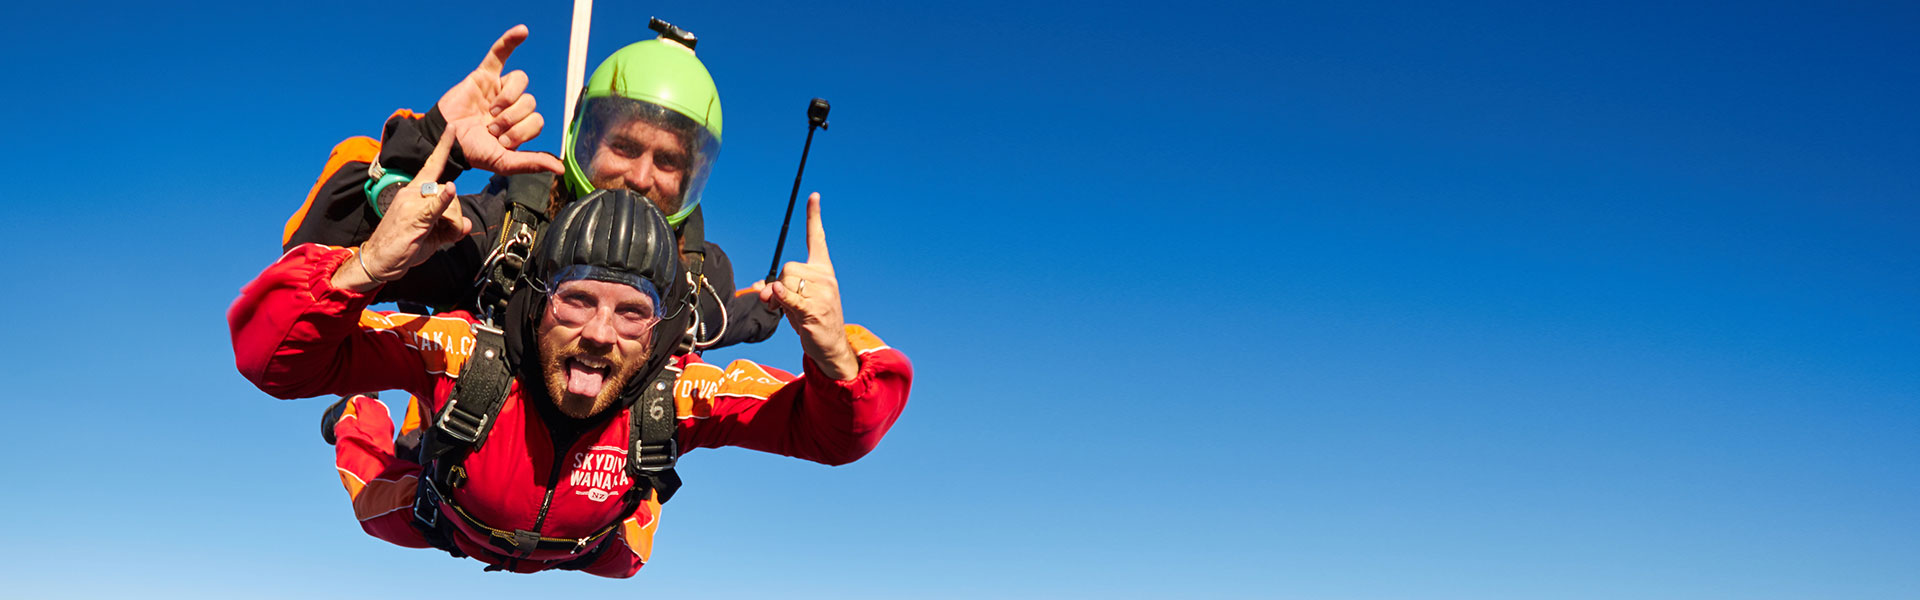 Skydiving Wanaka Prices & Packages | 9,000ft to 15,000ft Dives